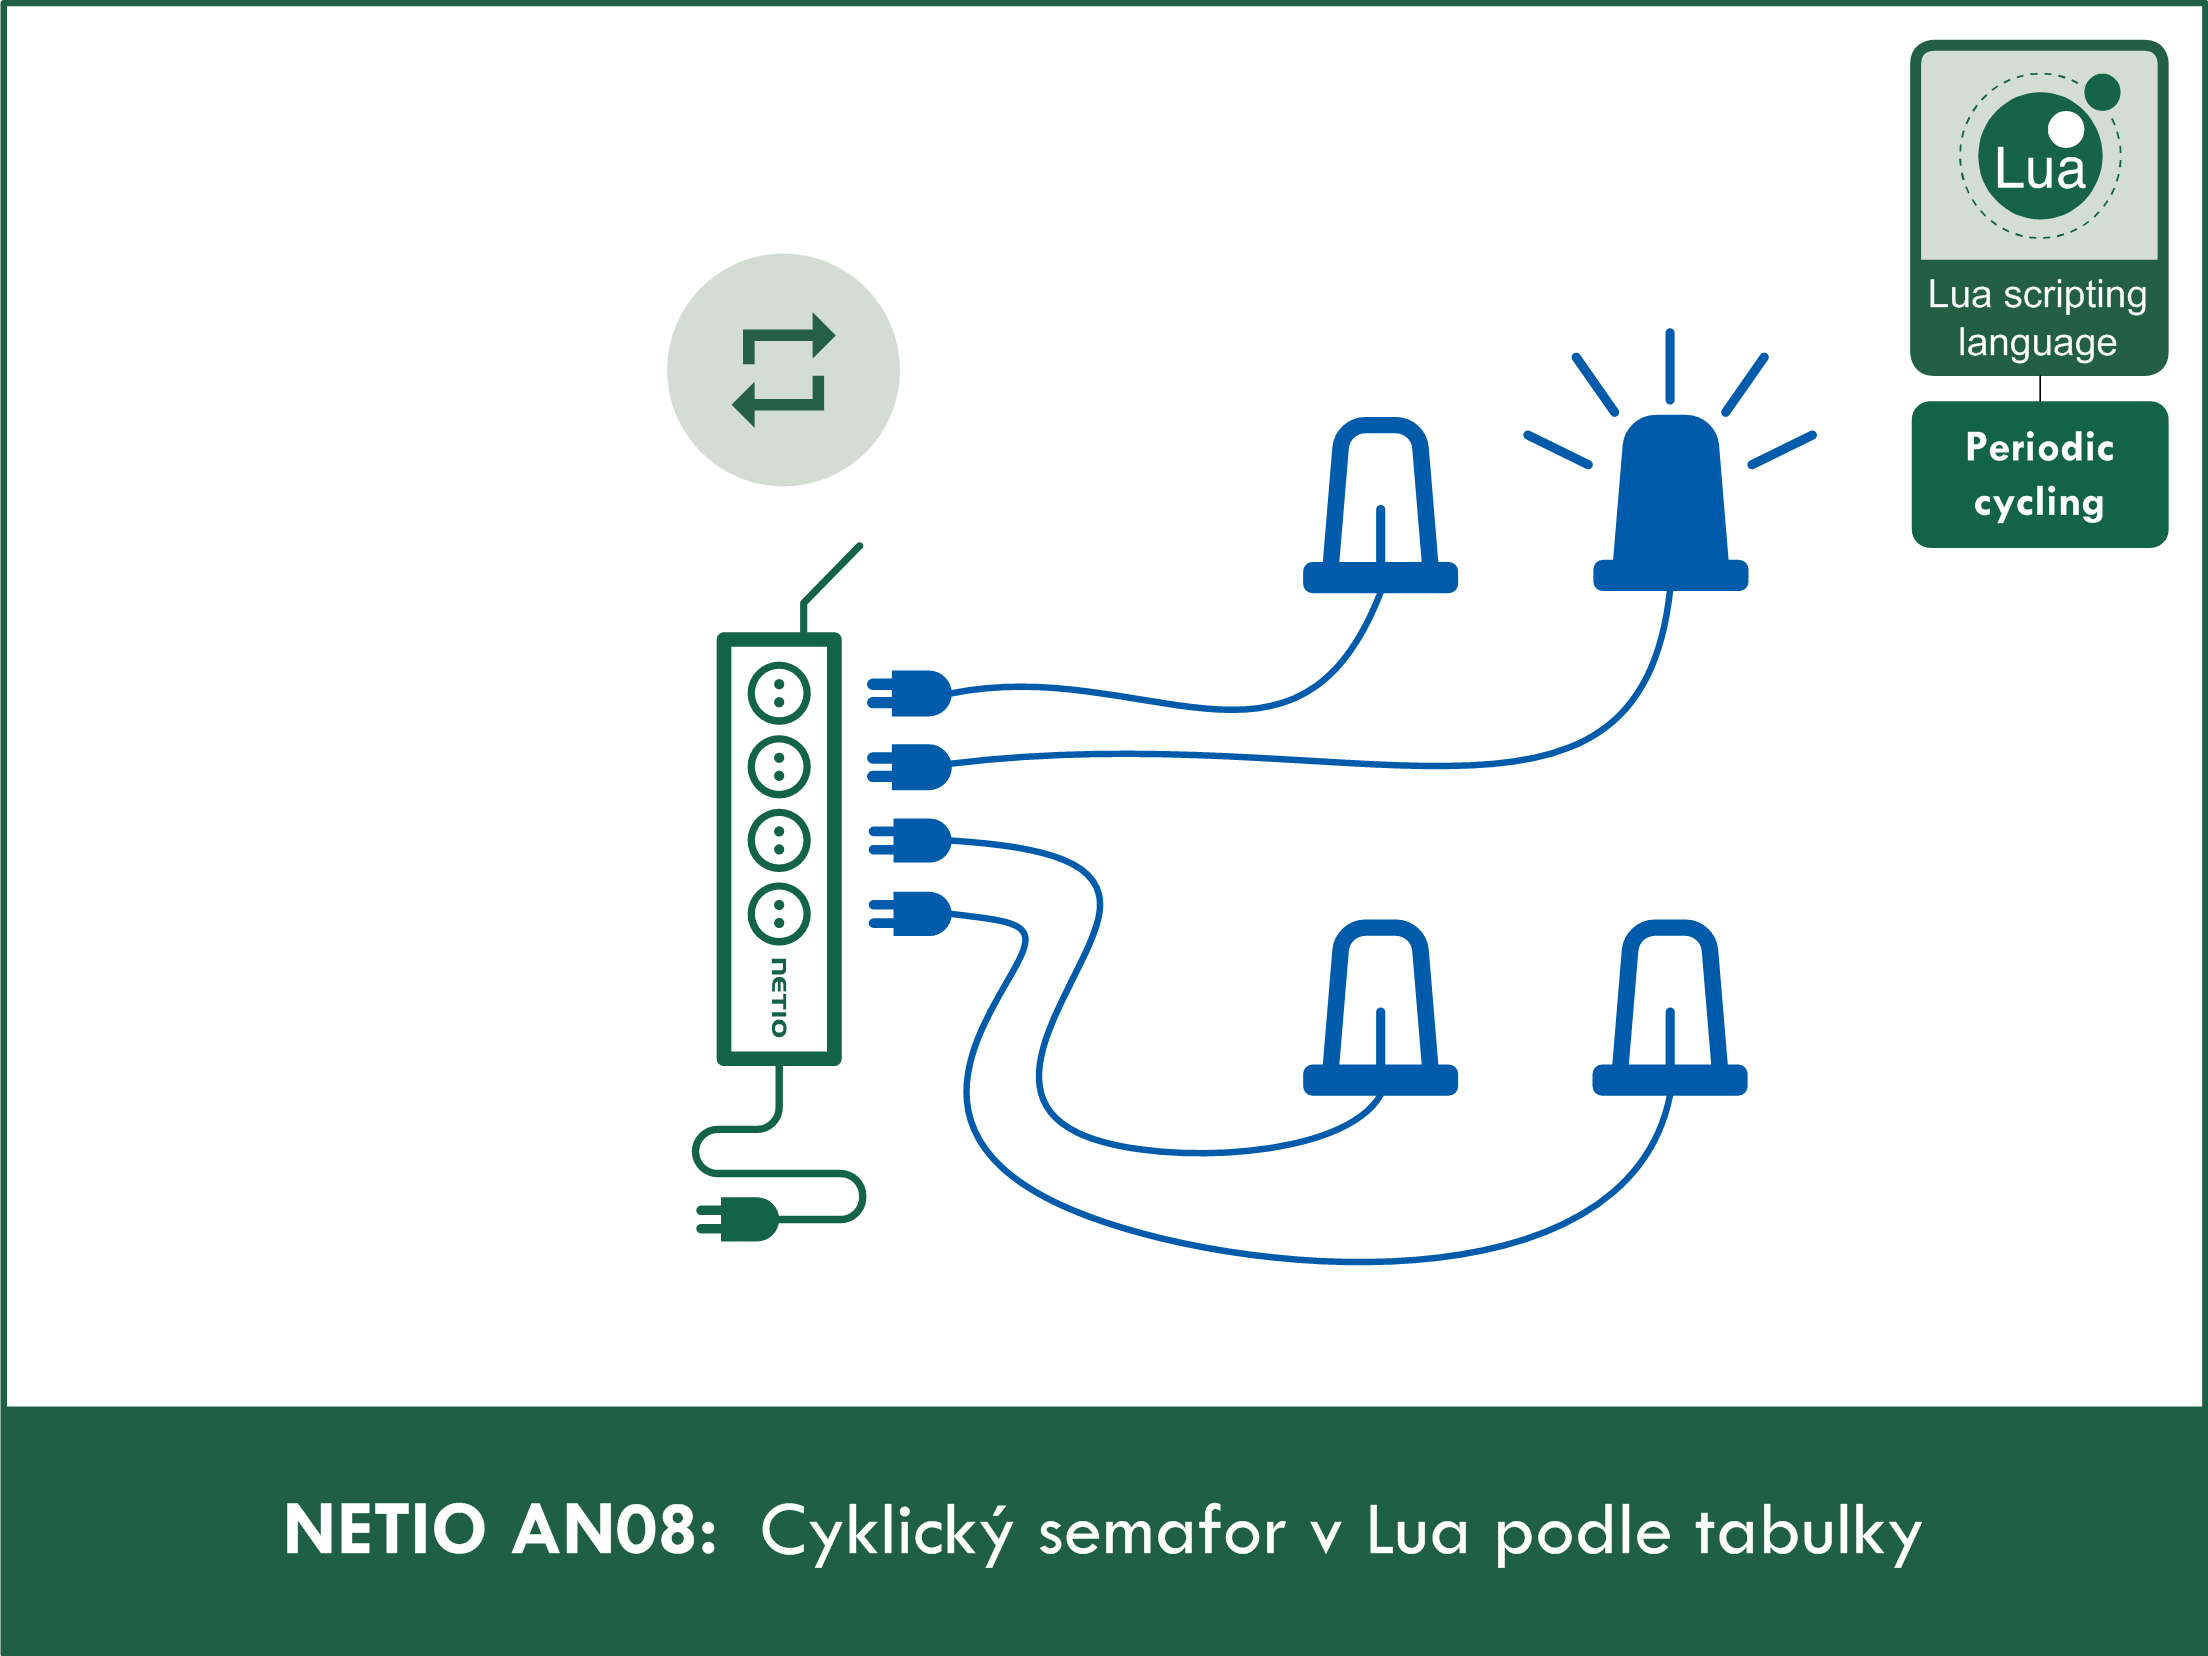 NETIO AN08 Cyclic traffic lights in Lua according to a defined table